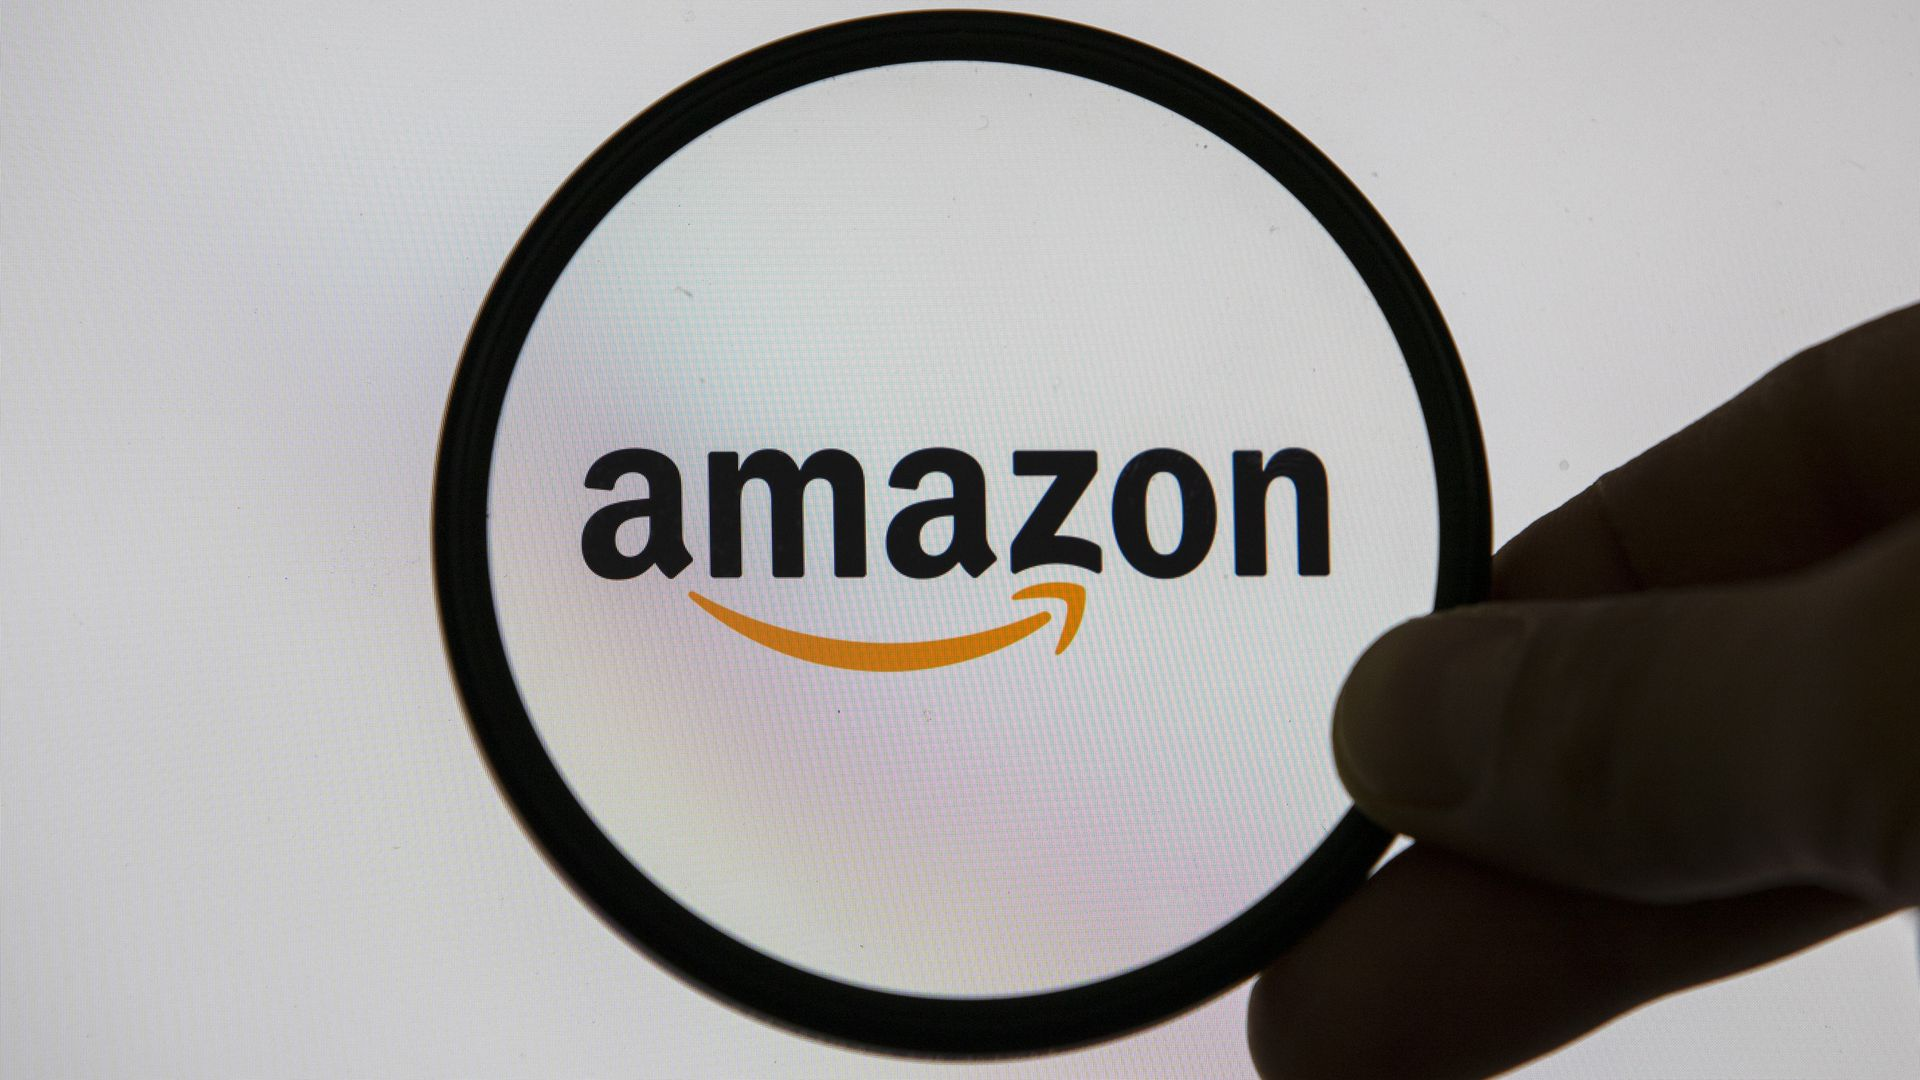 Amazon logo in a magnifying glass.